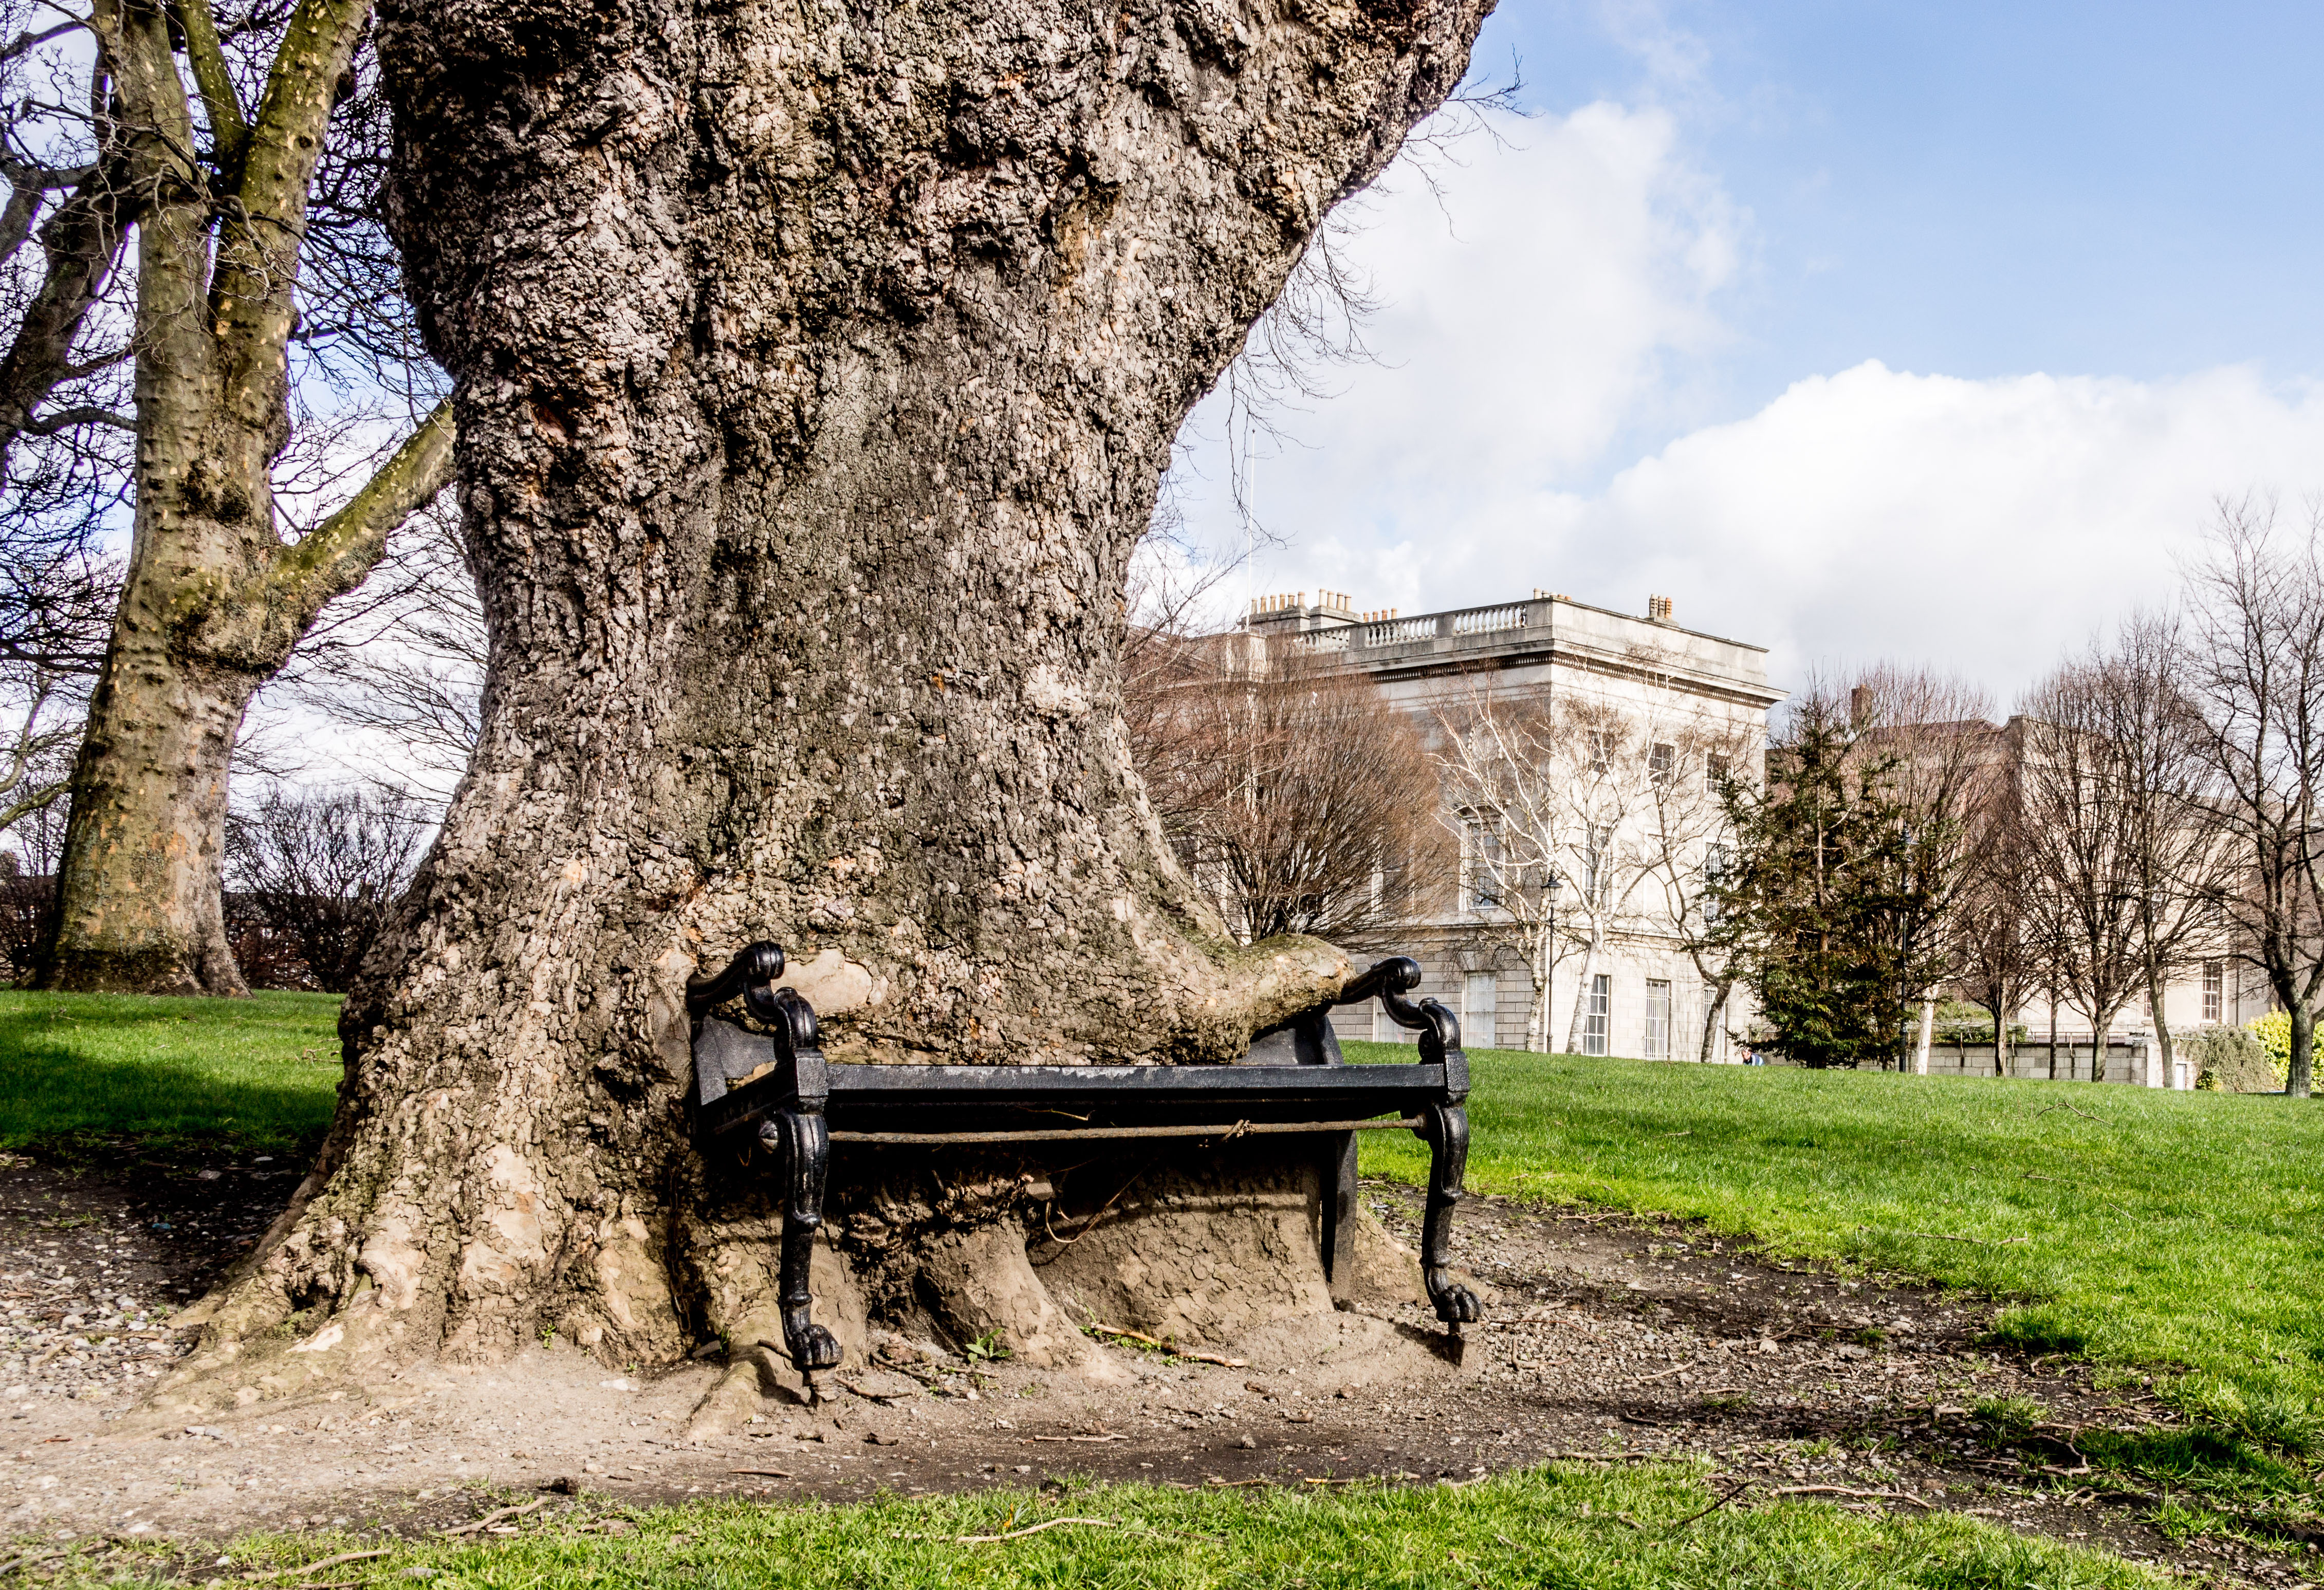 'Hungry tree' devouring cast-iron bench in Dublin